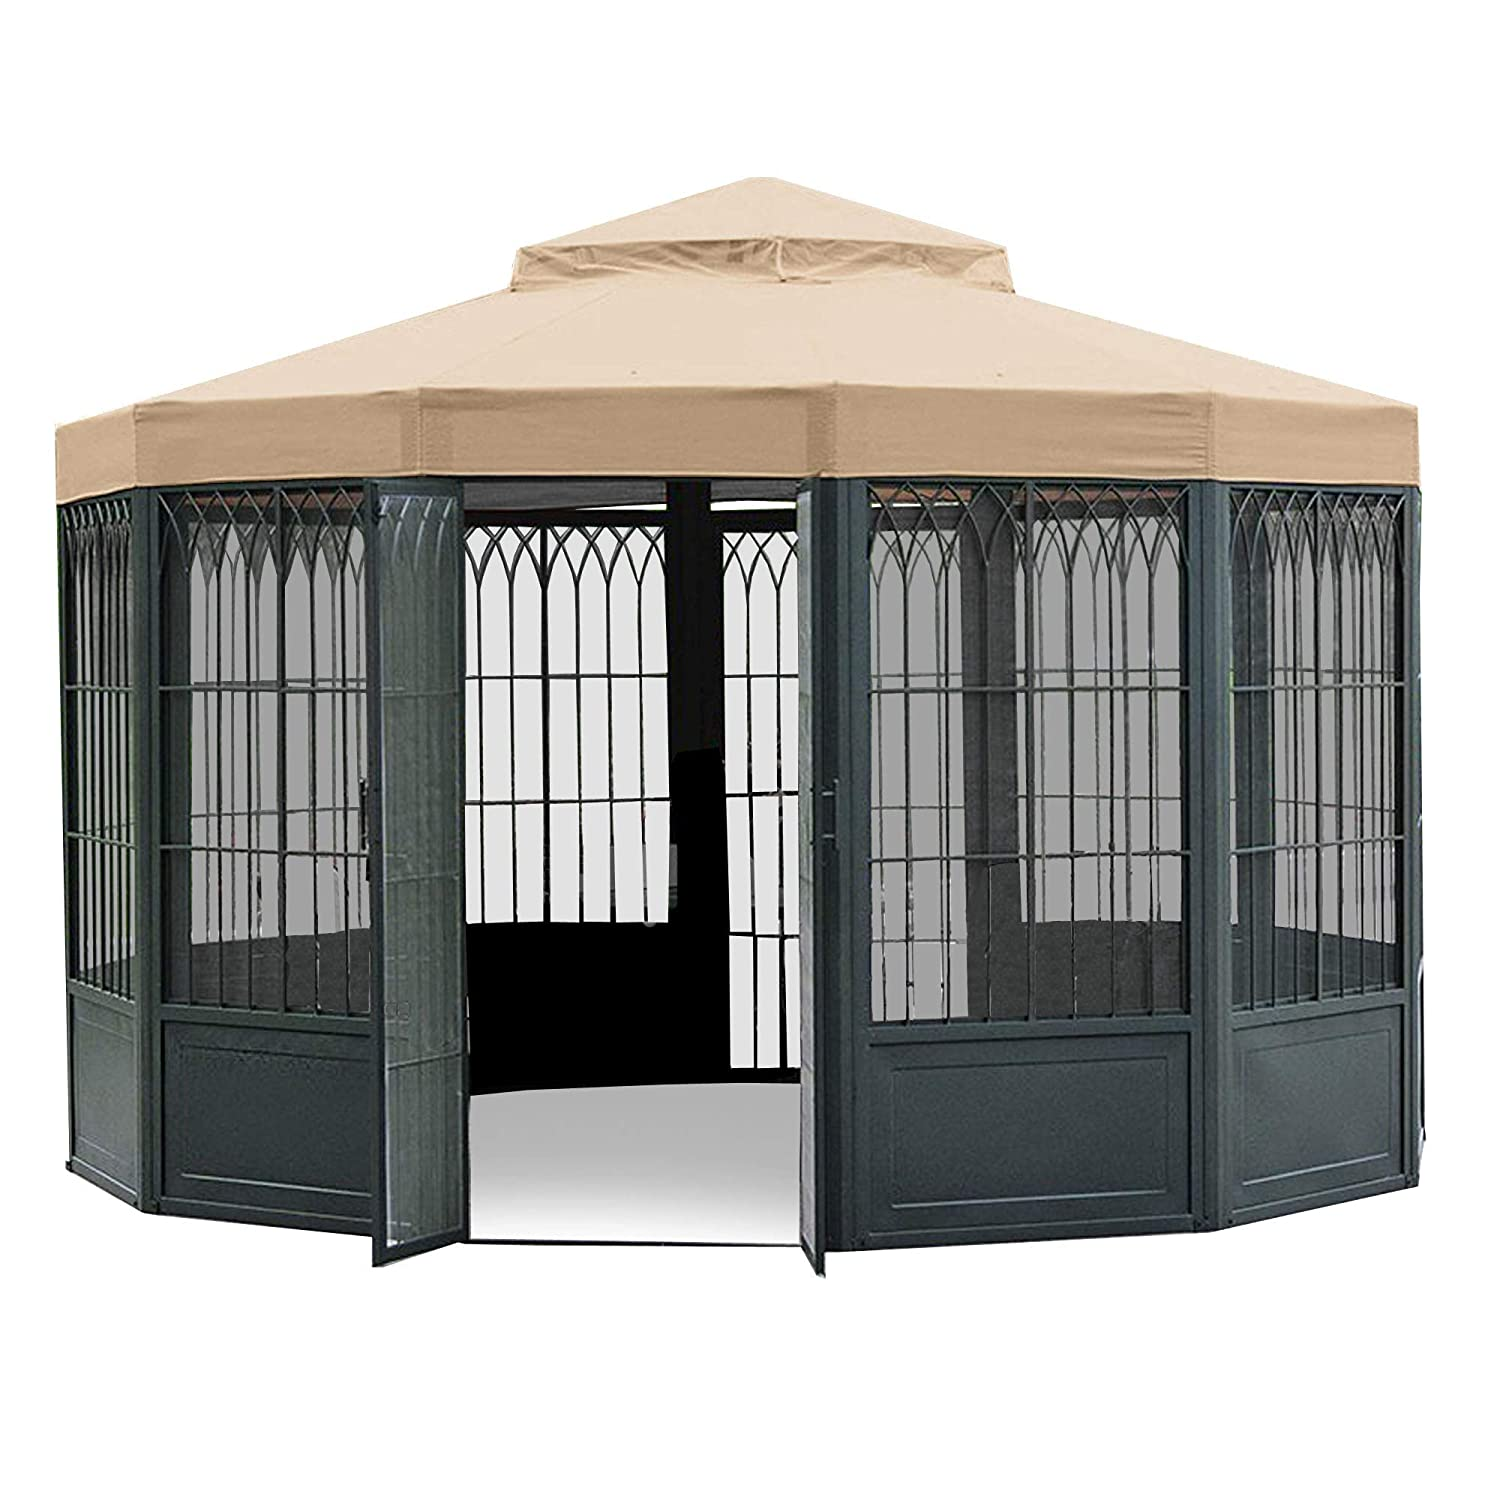 Garden Winds LCM507B-RS SAMS Club Sunhouse Gazebo Riplock 350 Replacement Canopy, Beige